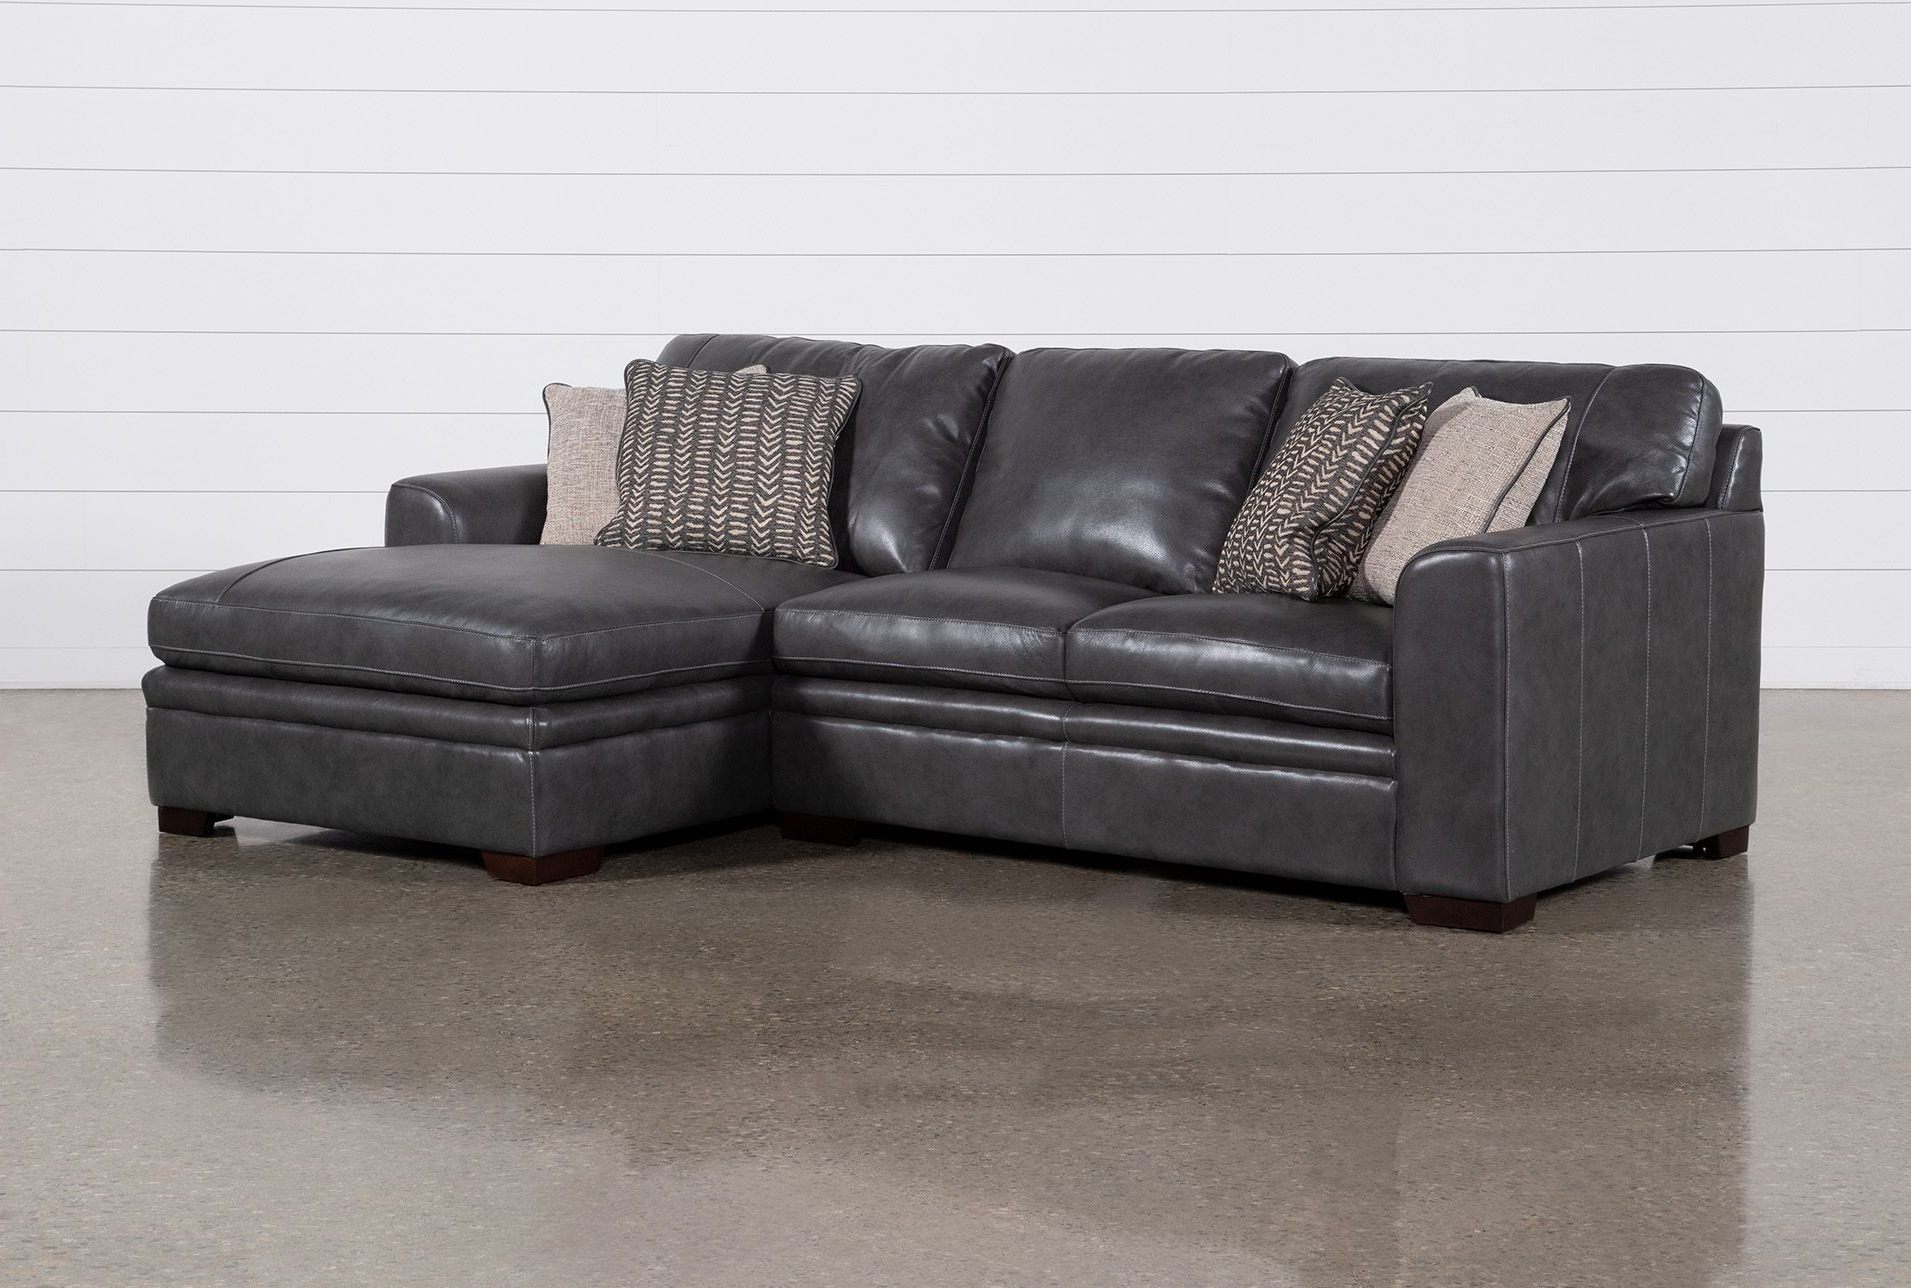 Greer Dark Grey Leather 2 Piece Sectional With Left Arm With Regard To Well Liked Dulce Right Sectional Sofas Twill Stone (View 25 of 25)